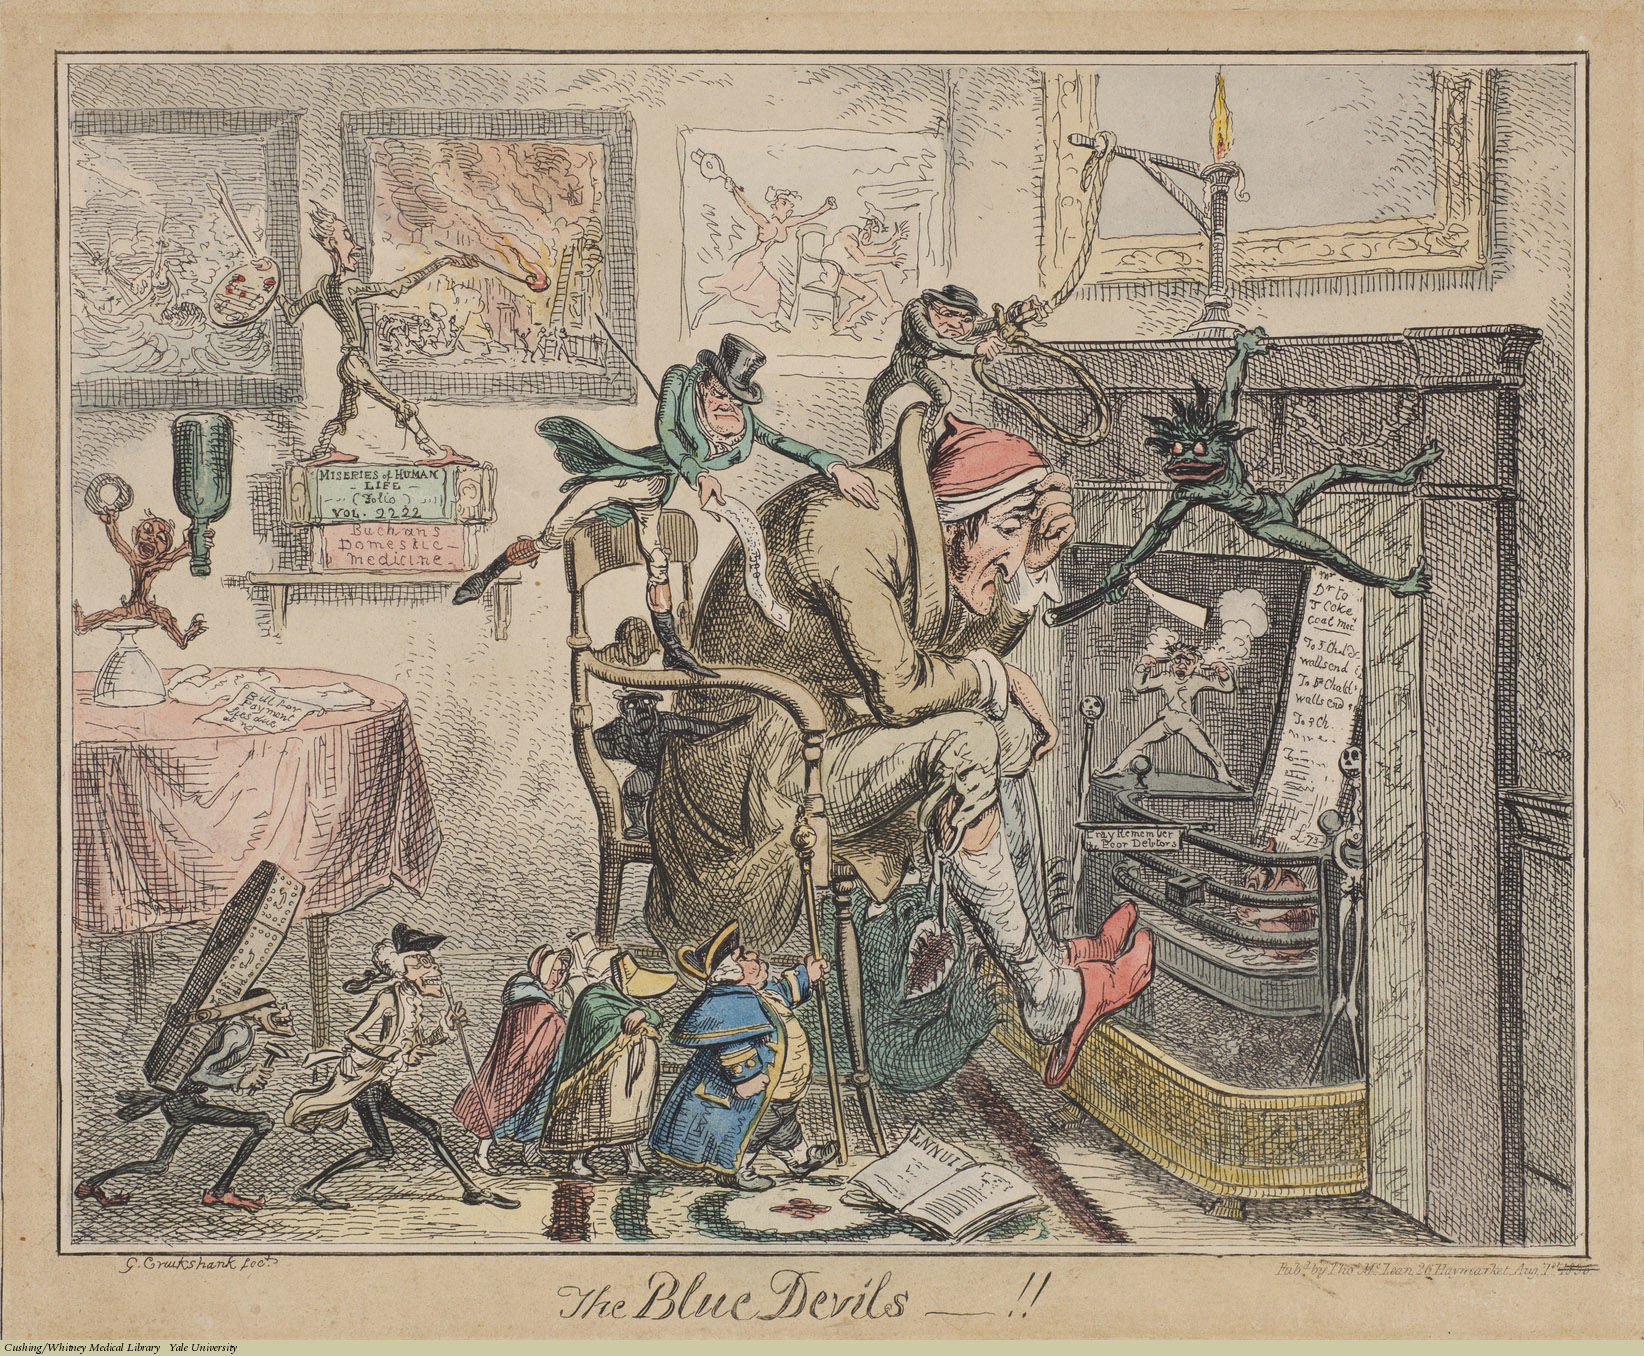 Blue Devils, George Cruikshank, Etching. Subject: Depression, Suicide, Devils & Demons.